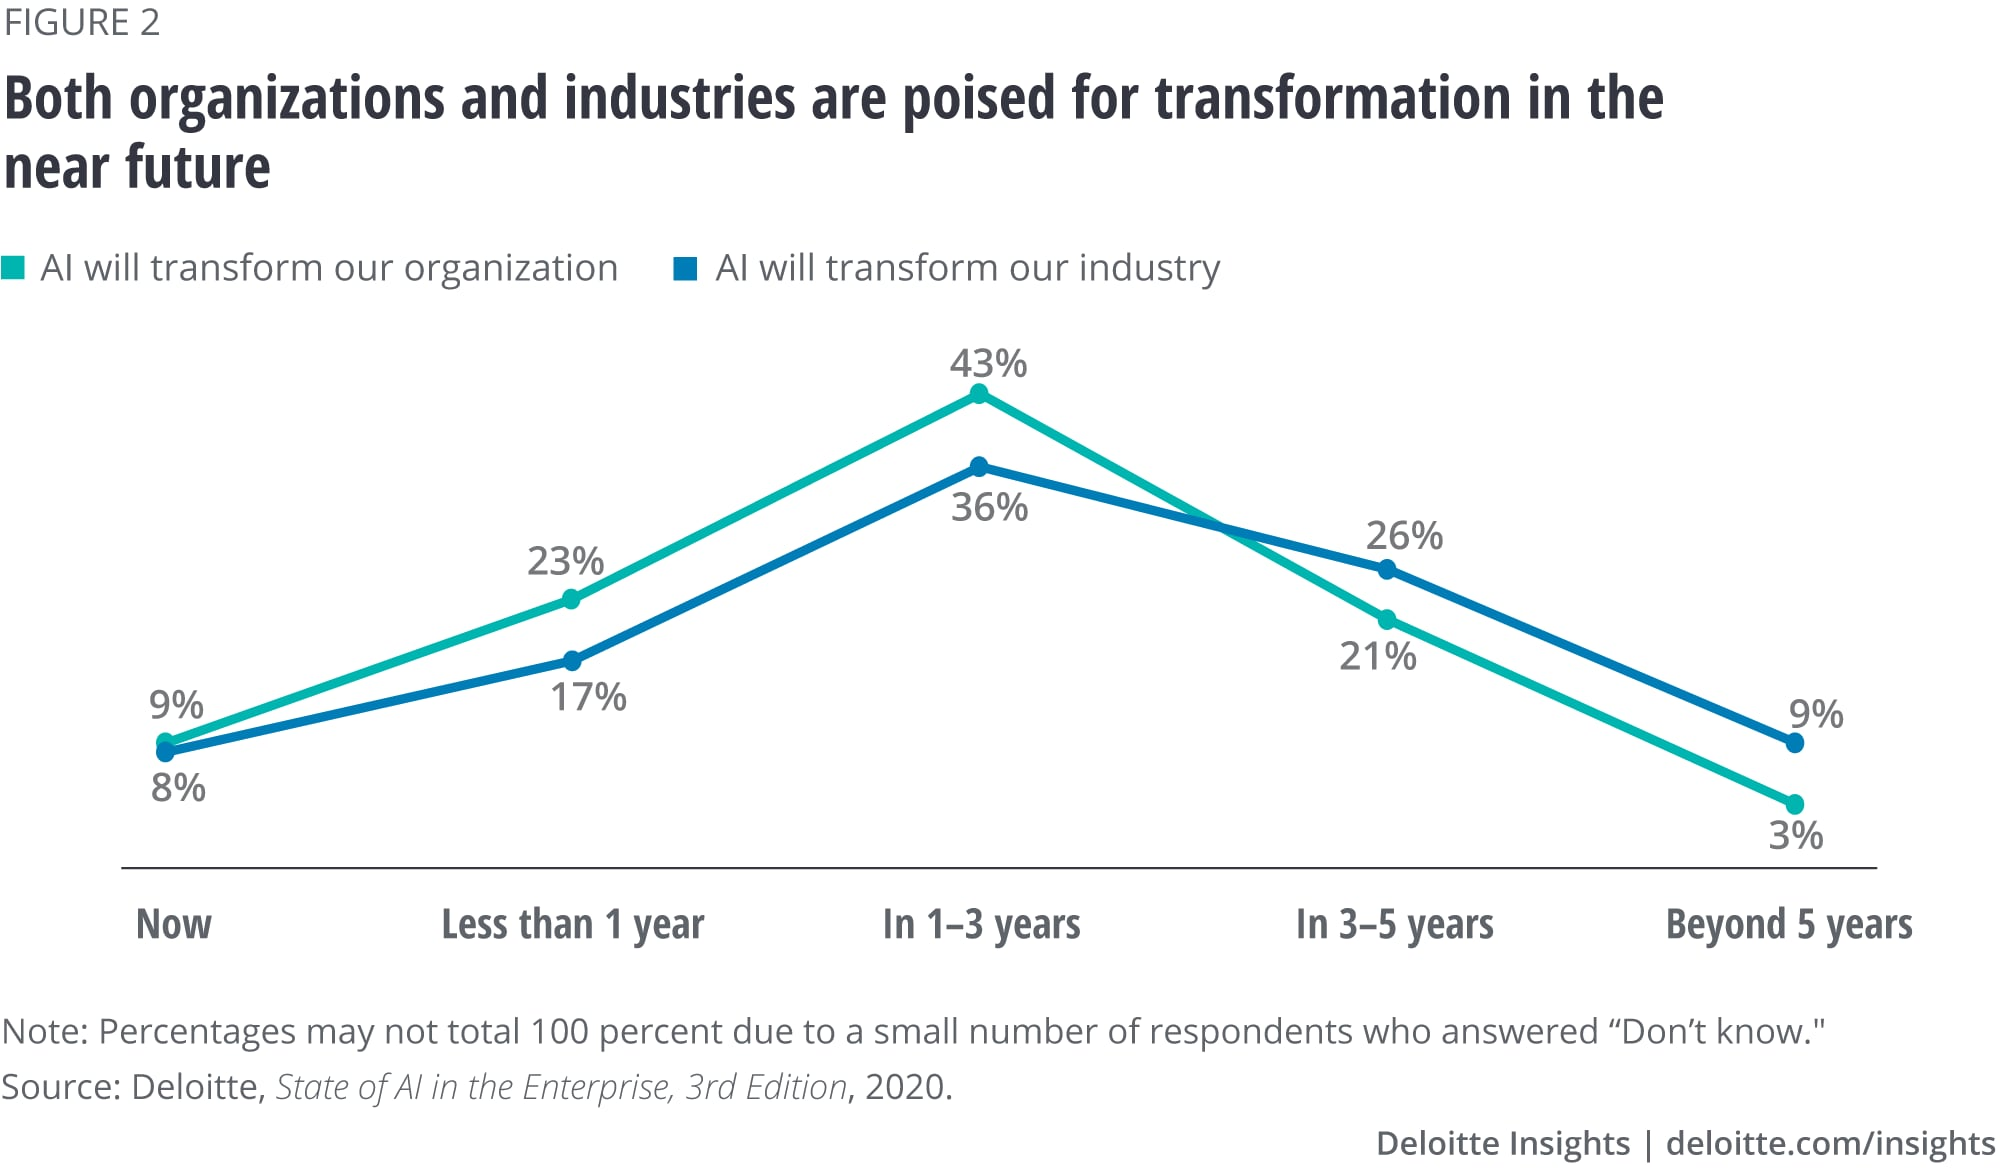 Both organizations and industries are poised for transformation in the near future